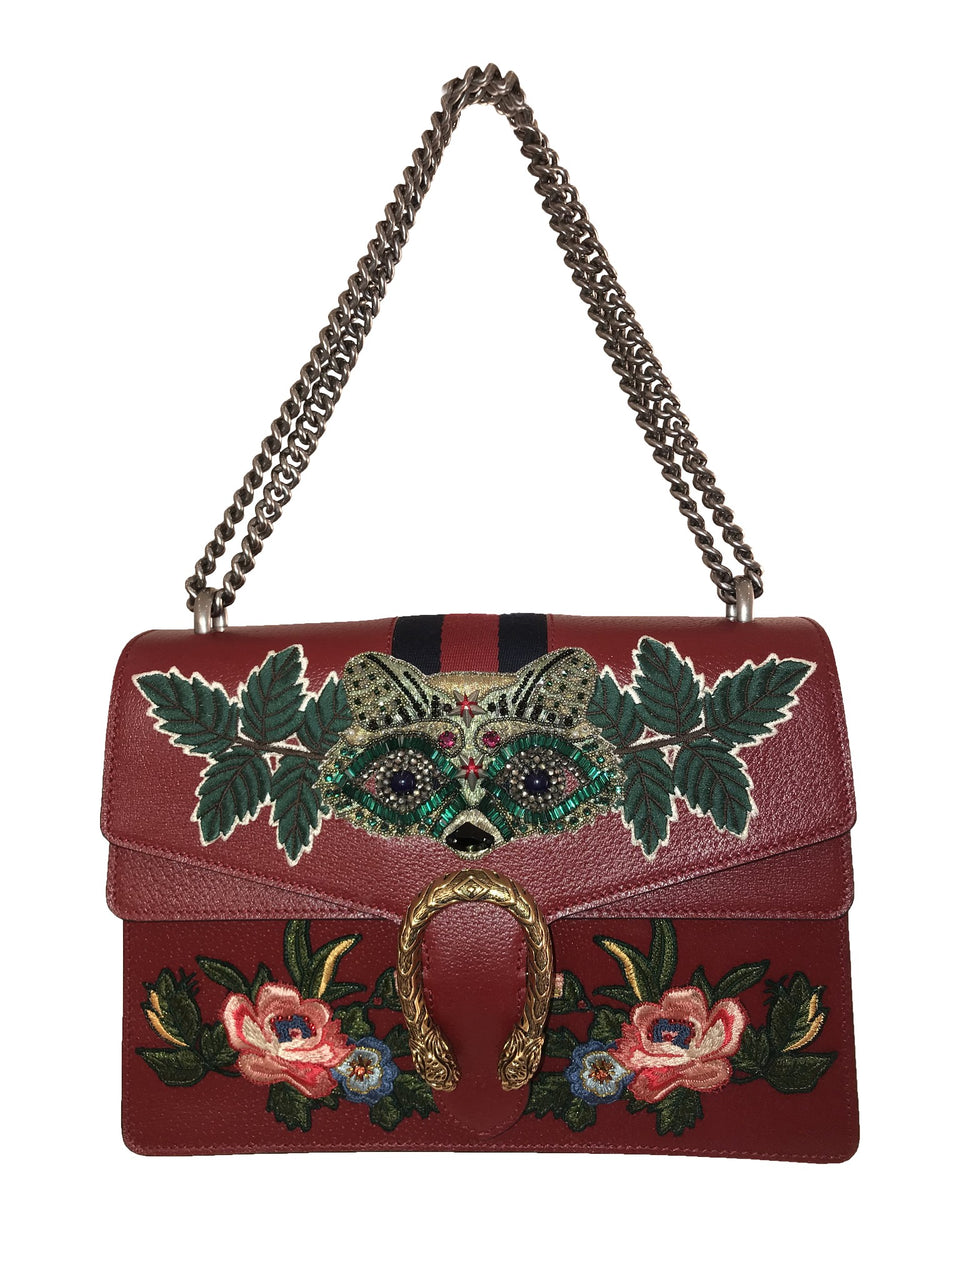 Dionysus Raccoon-Embroidered Shoulder Bag